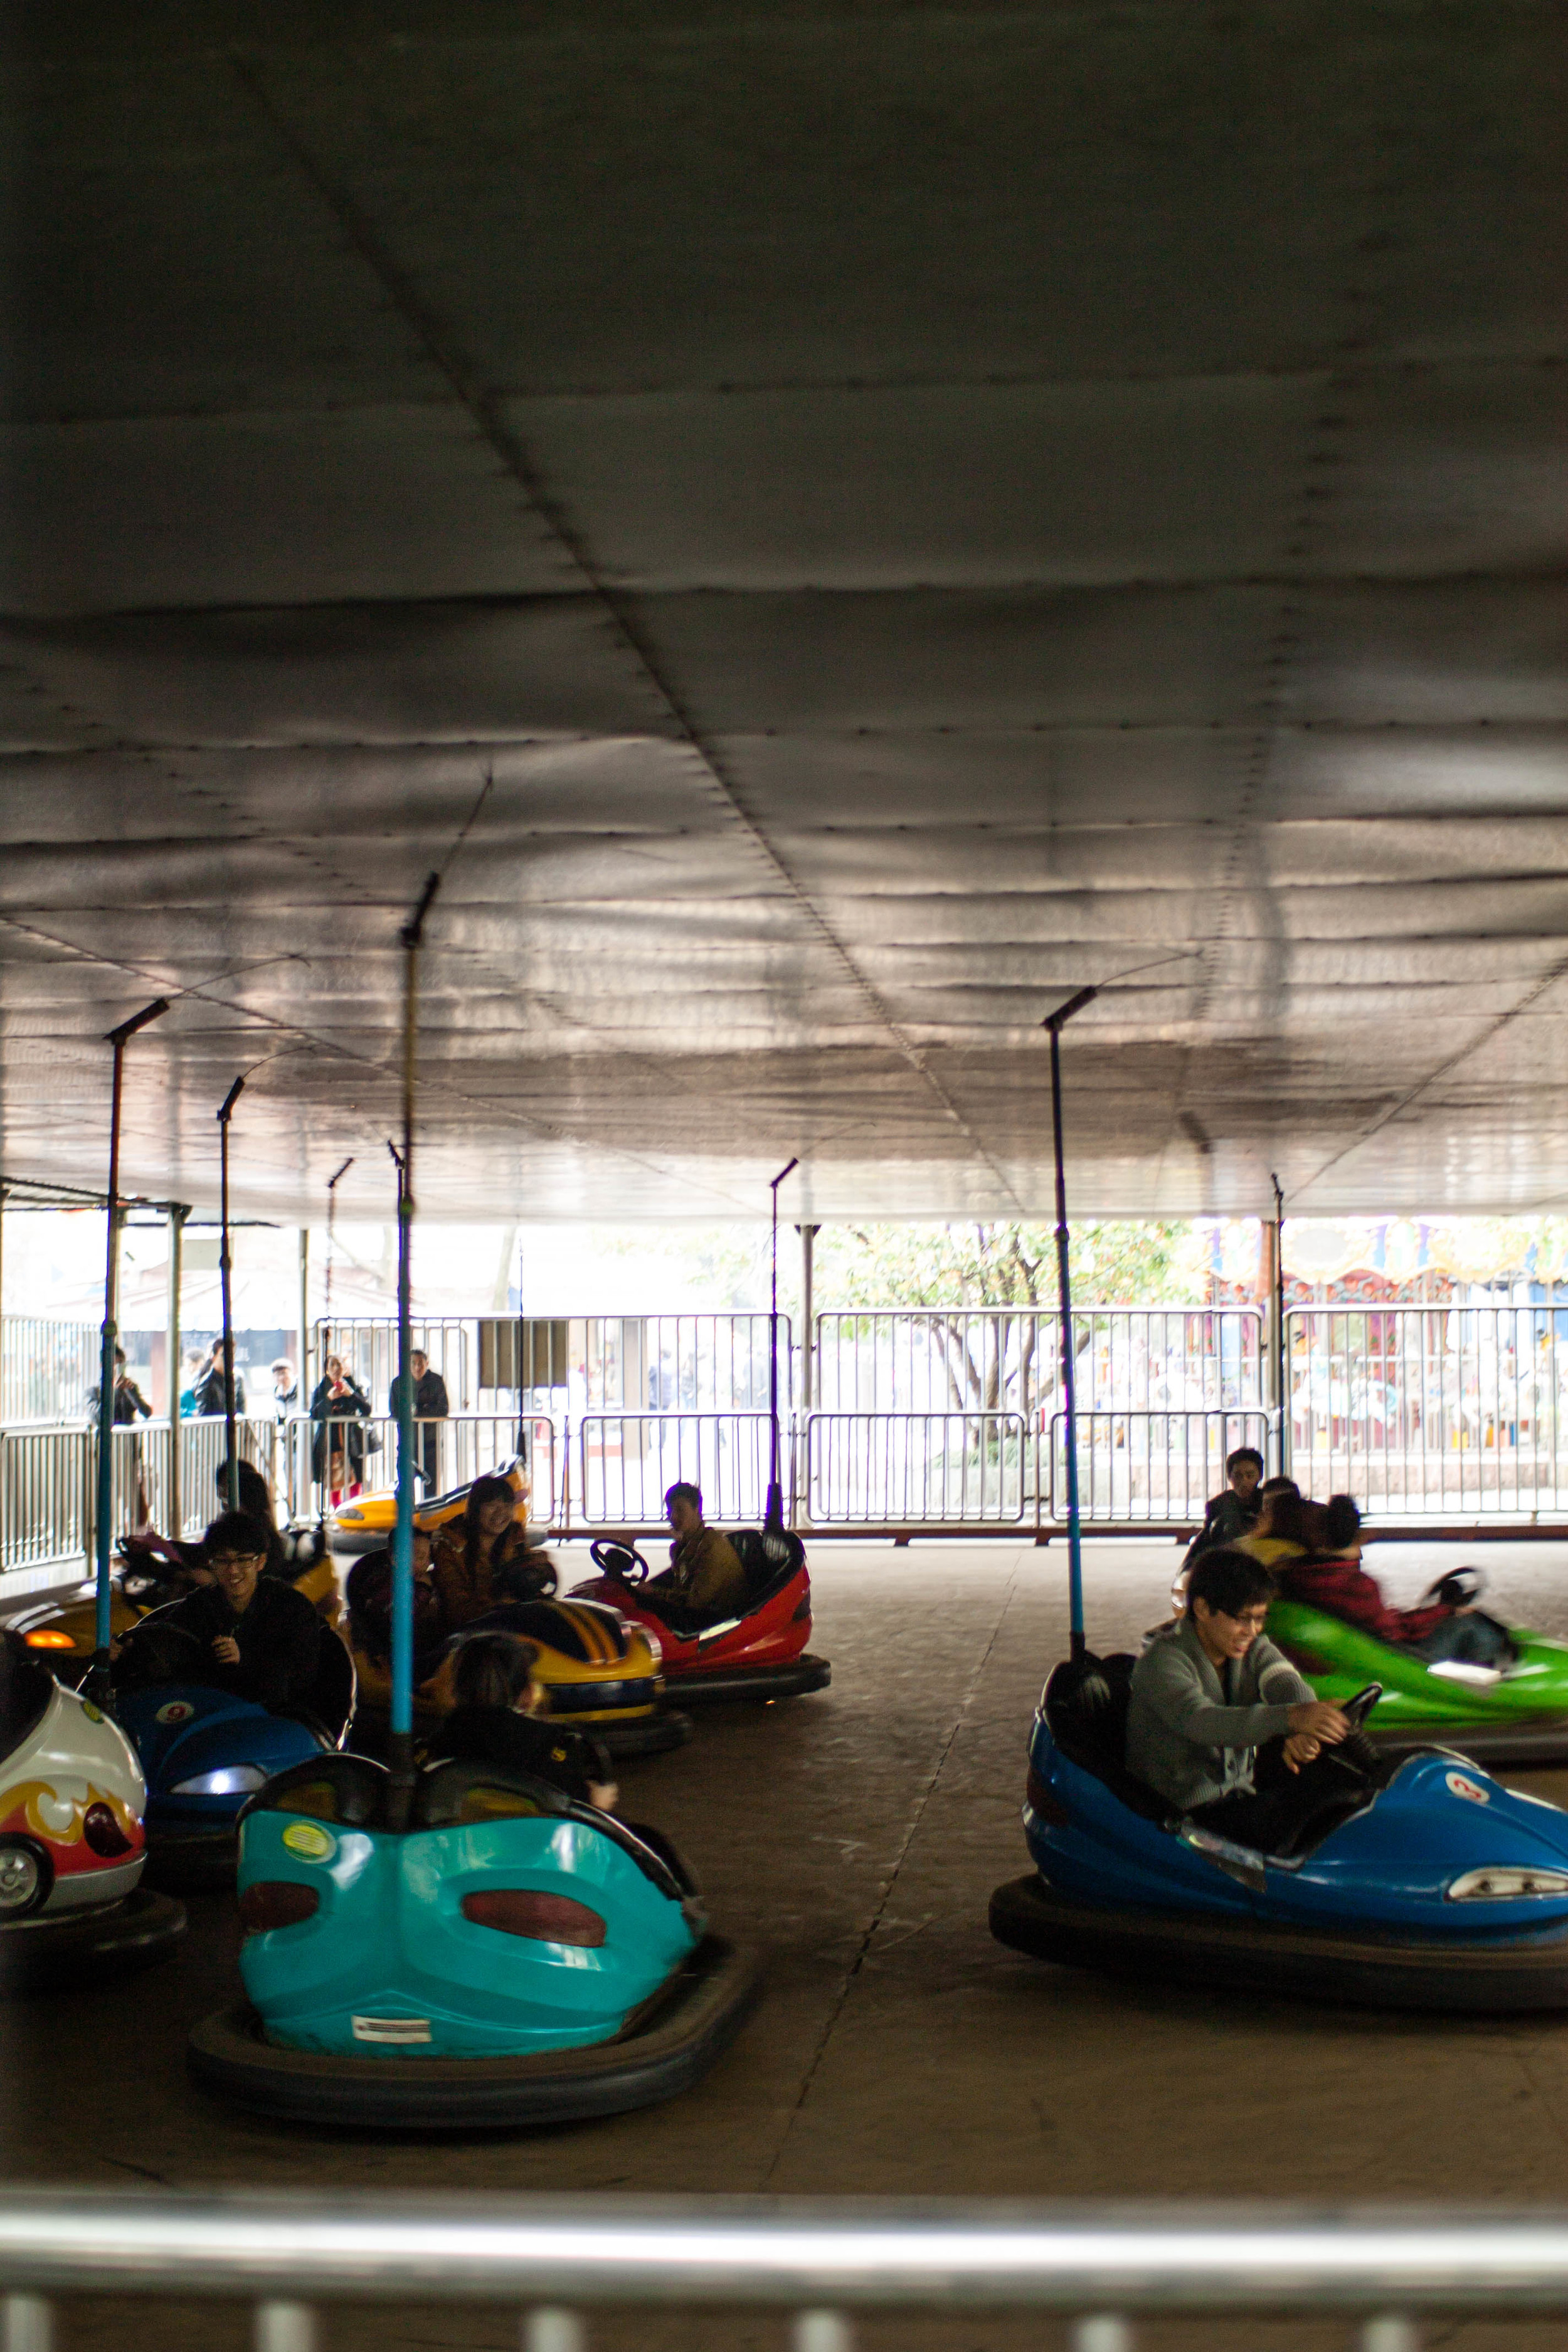 Bumper cars at People's Square, Shanghai